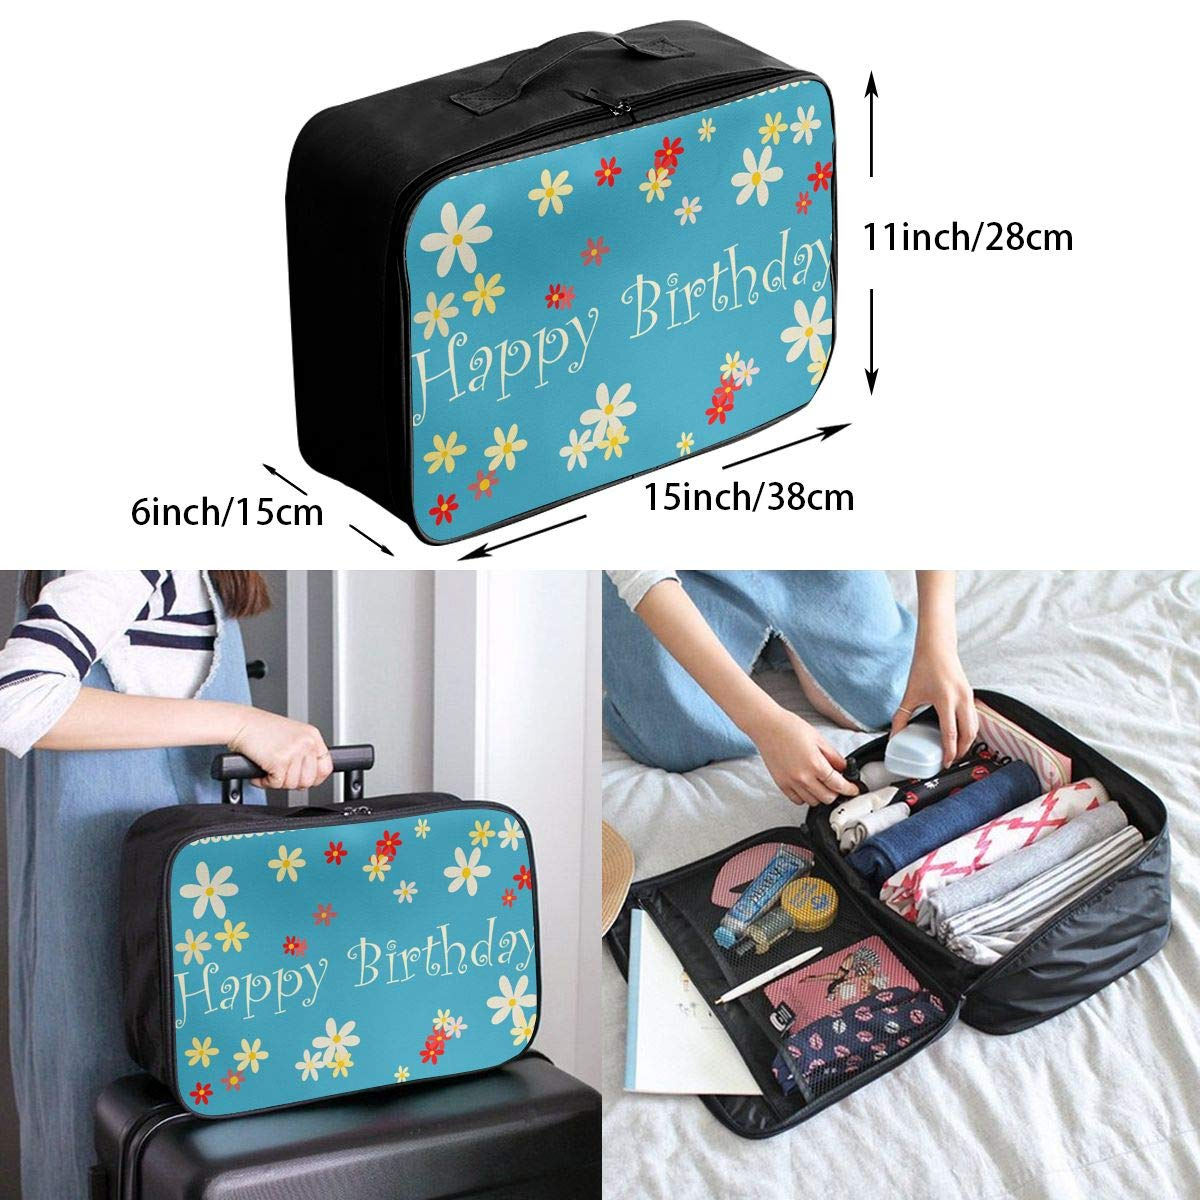 Travel Luggage Duffle Bag Lightweight Portable Handbag Guitar Large Capacity Waterproof Foldable Storage Tote